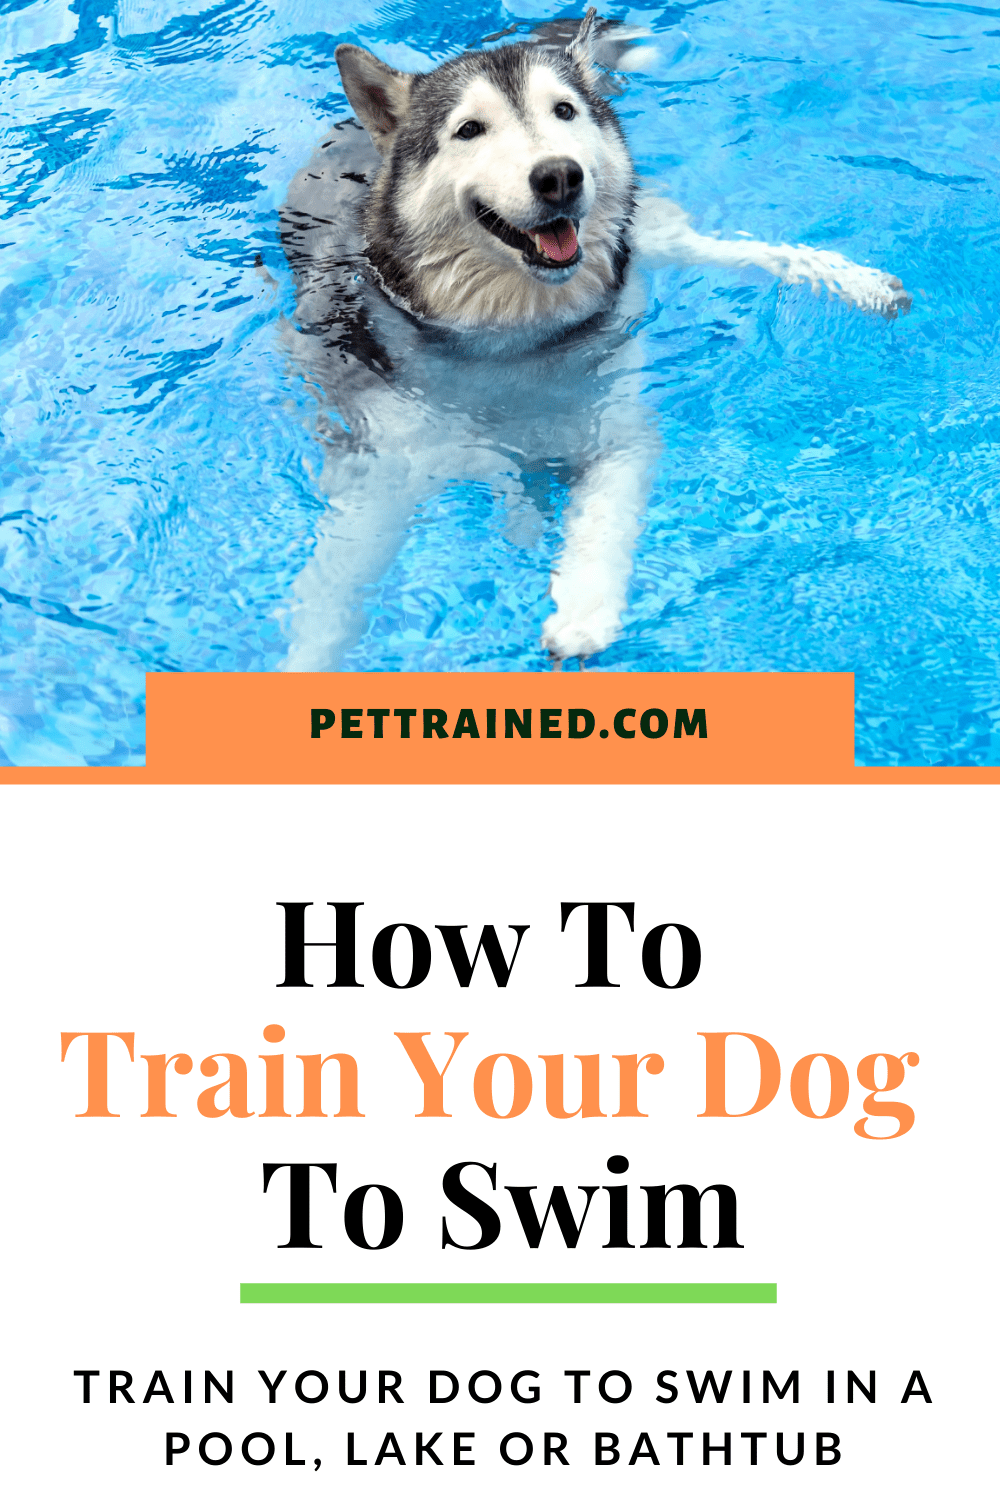 Train my dog to swim in a bathtub